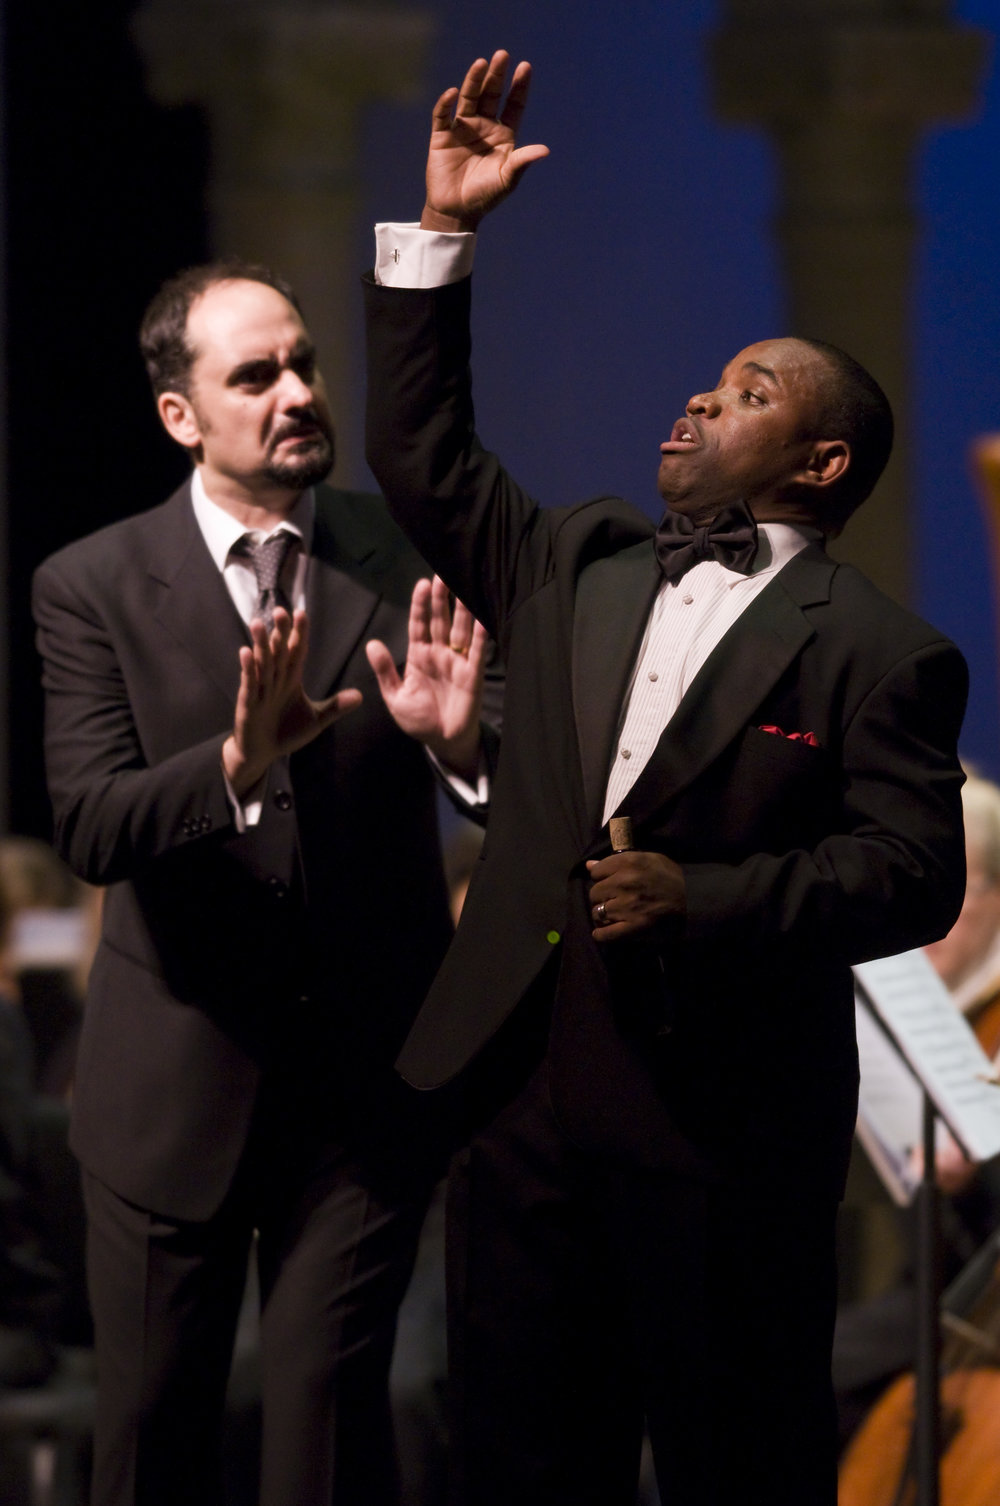 Marco Nistico and Lawrence Brownlee in L'elisir d'amore at Caramoor (photo by Gabe Palacio)